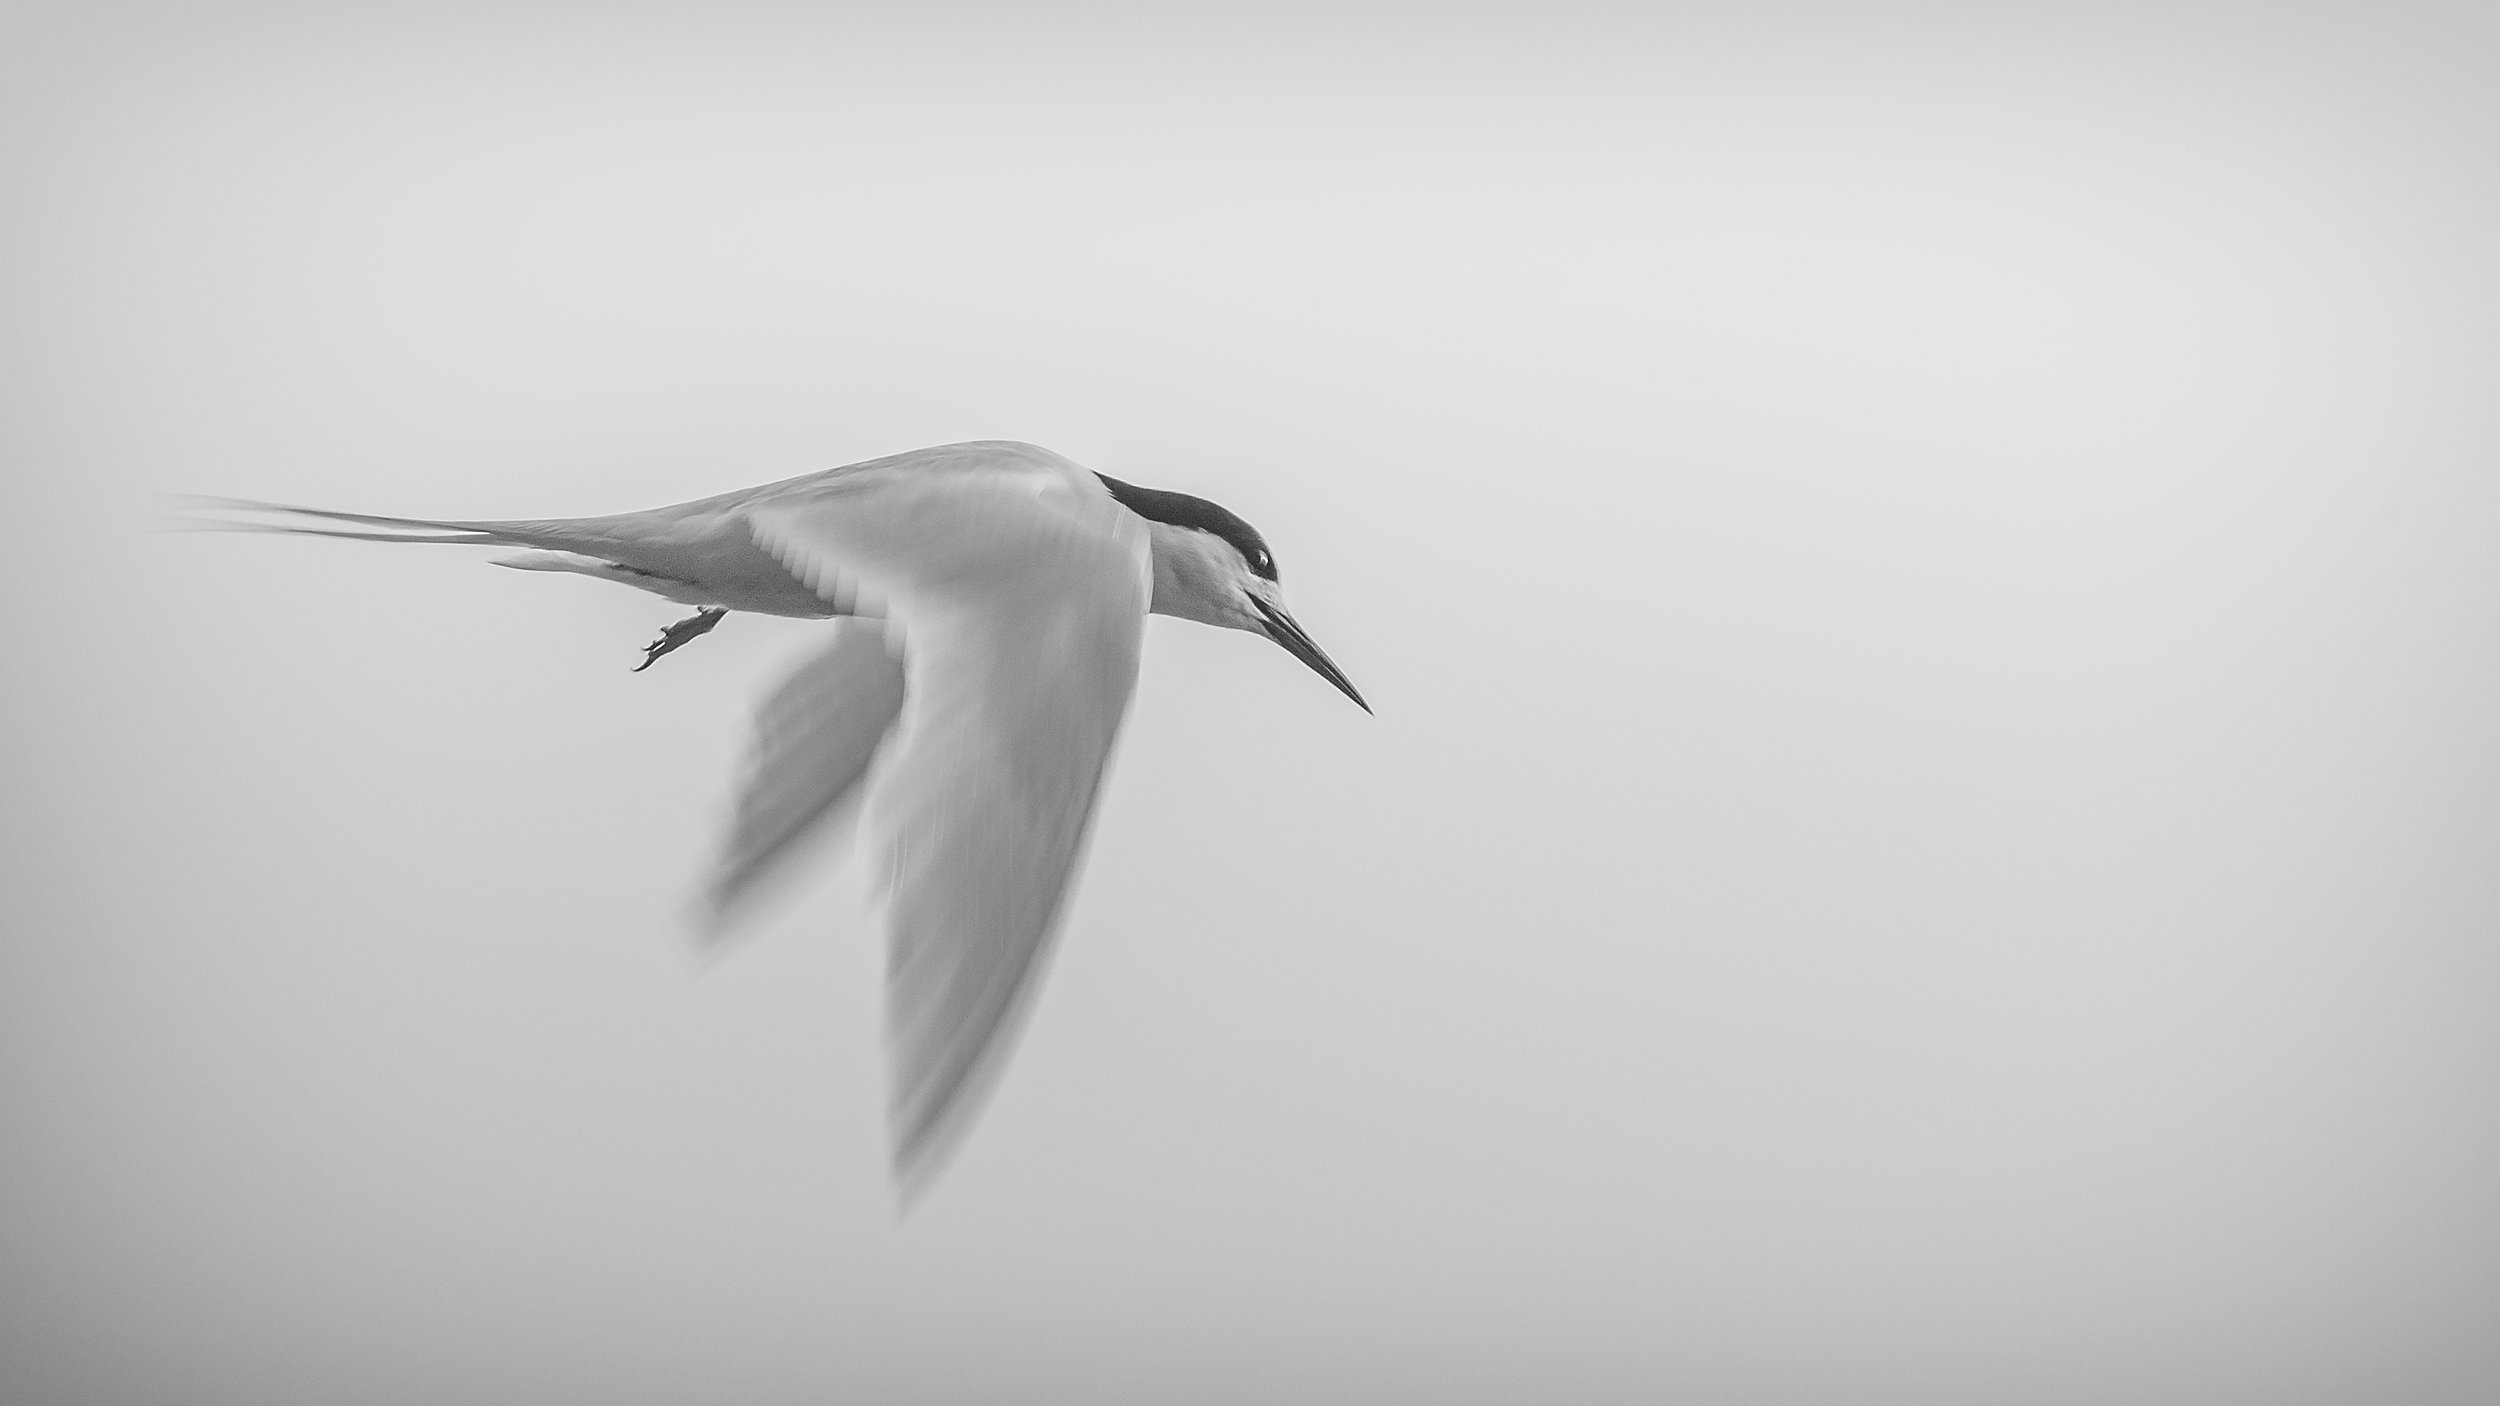 White Fronted Tern by Andy Thompson